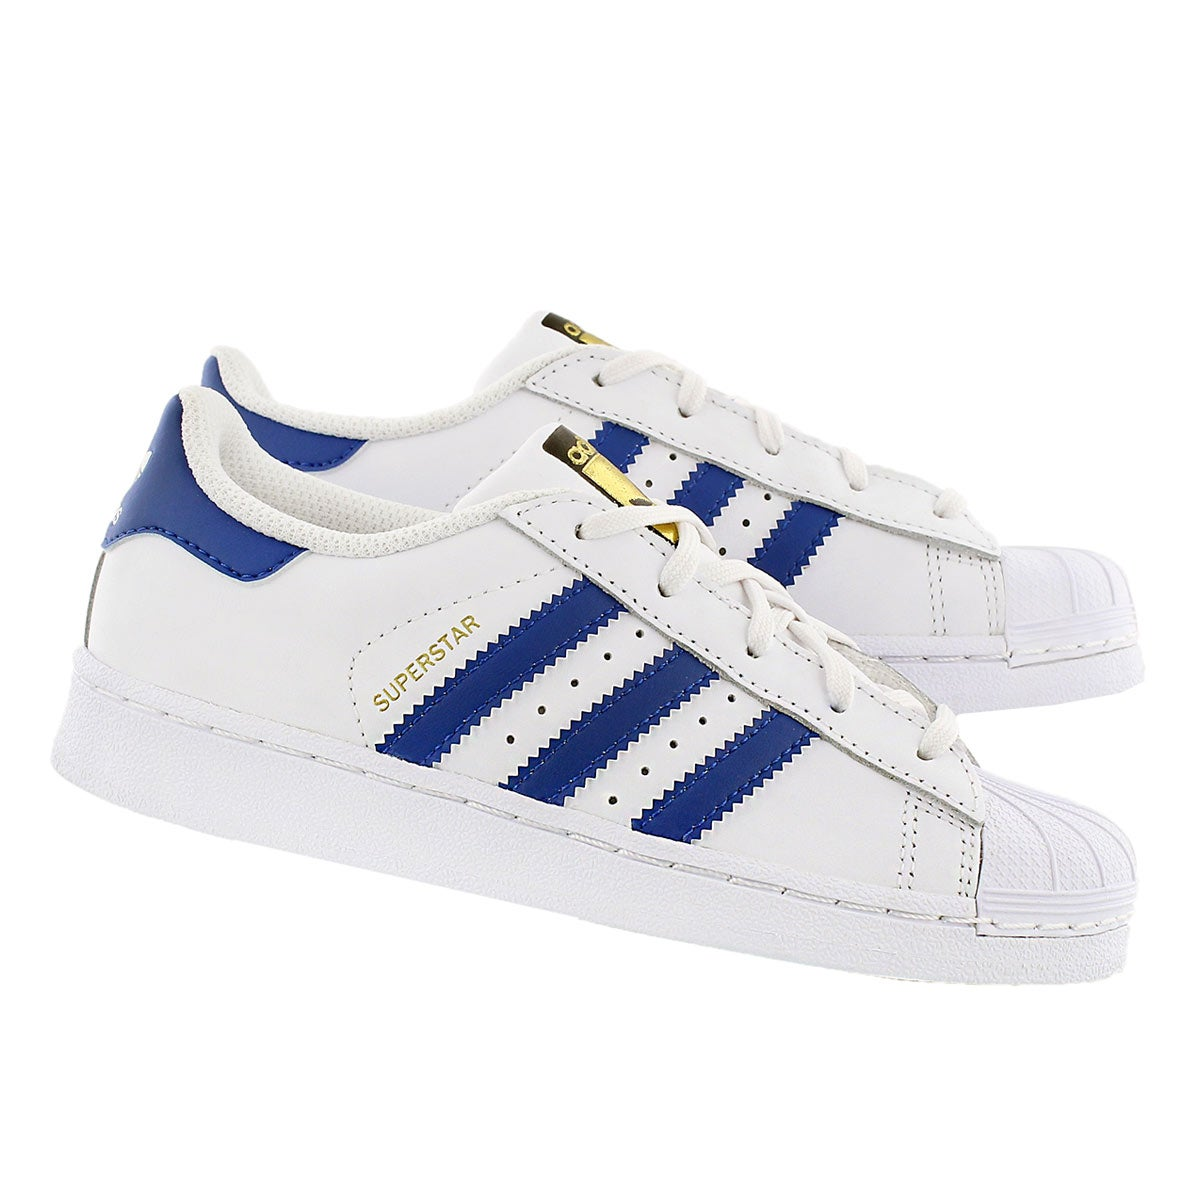 Bys Superstar wht/blue sneaker